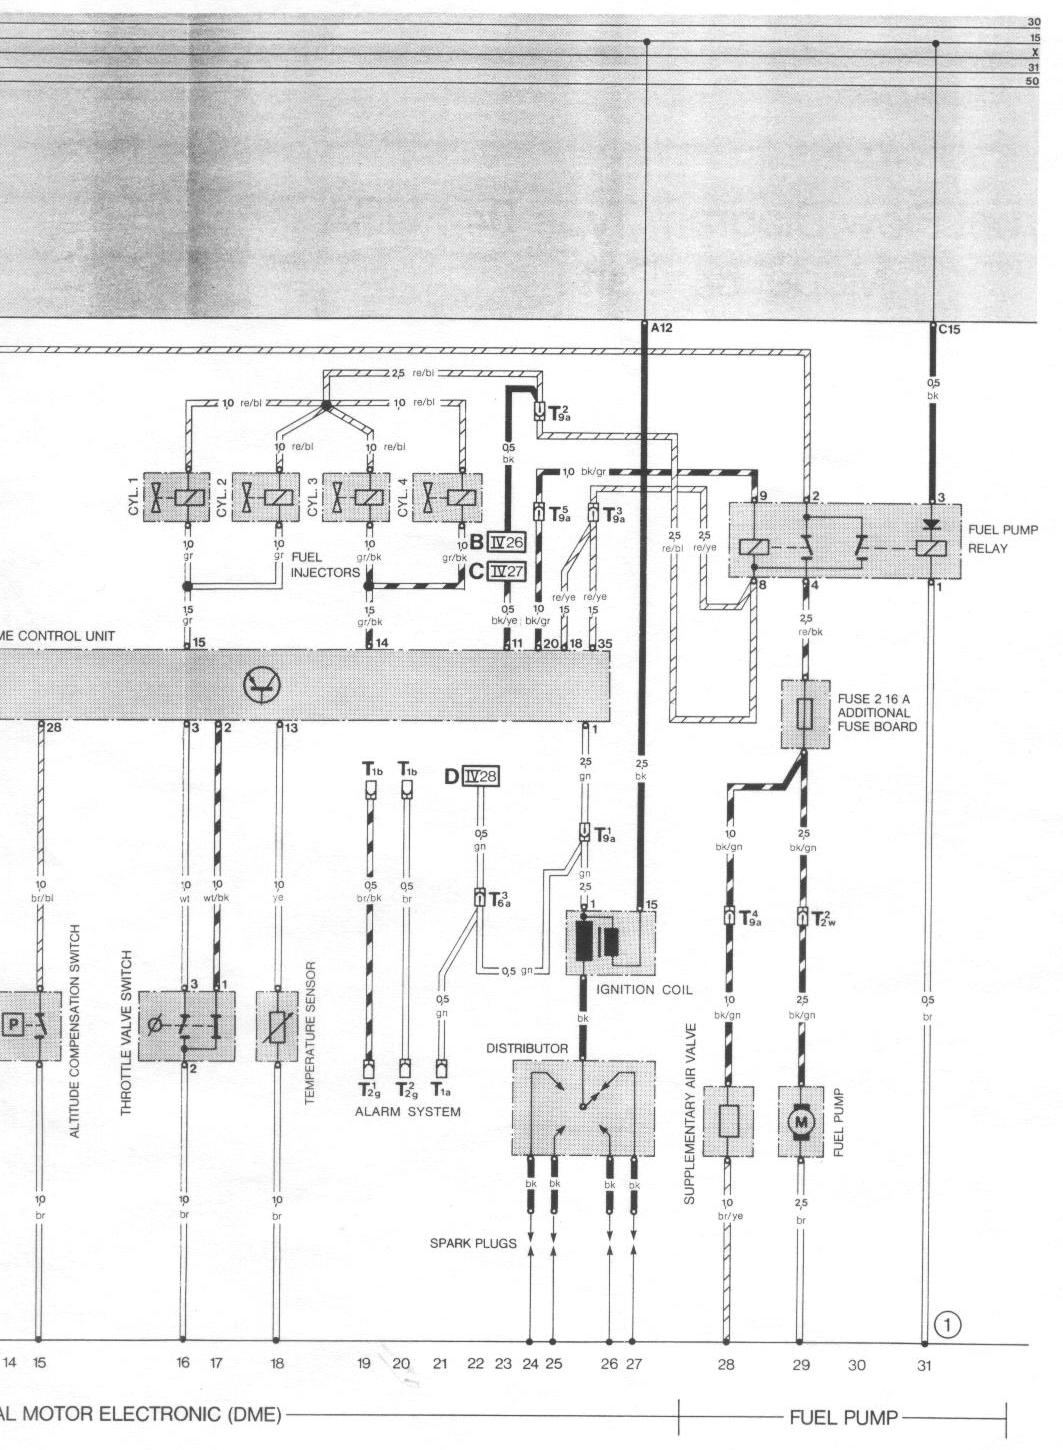 hight resolution of 1984 porsche 944 fuse diagram wiring diagram split84 944 fuse box diagram wiring diagram technic 1984